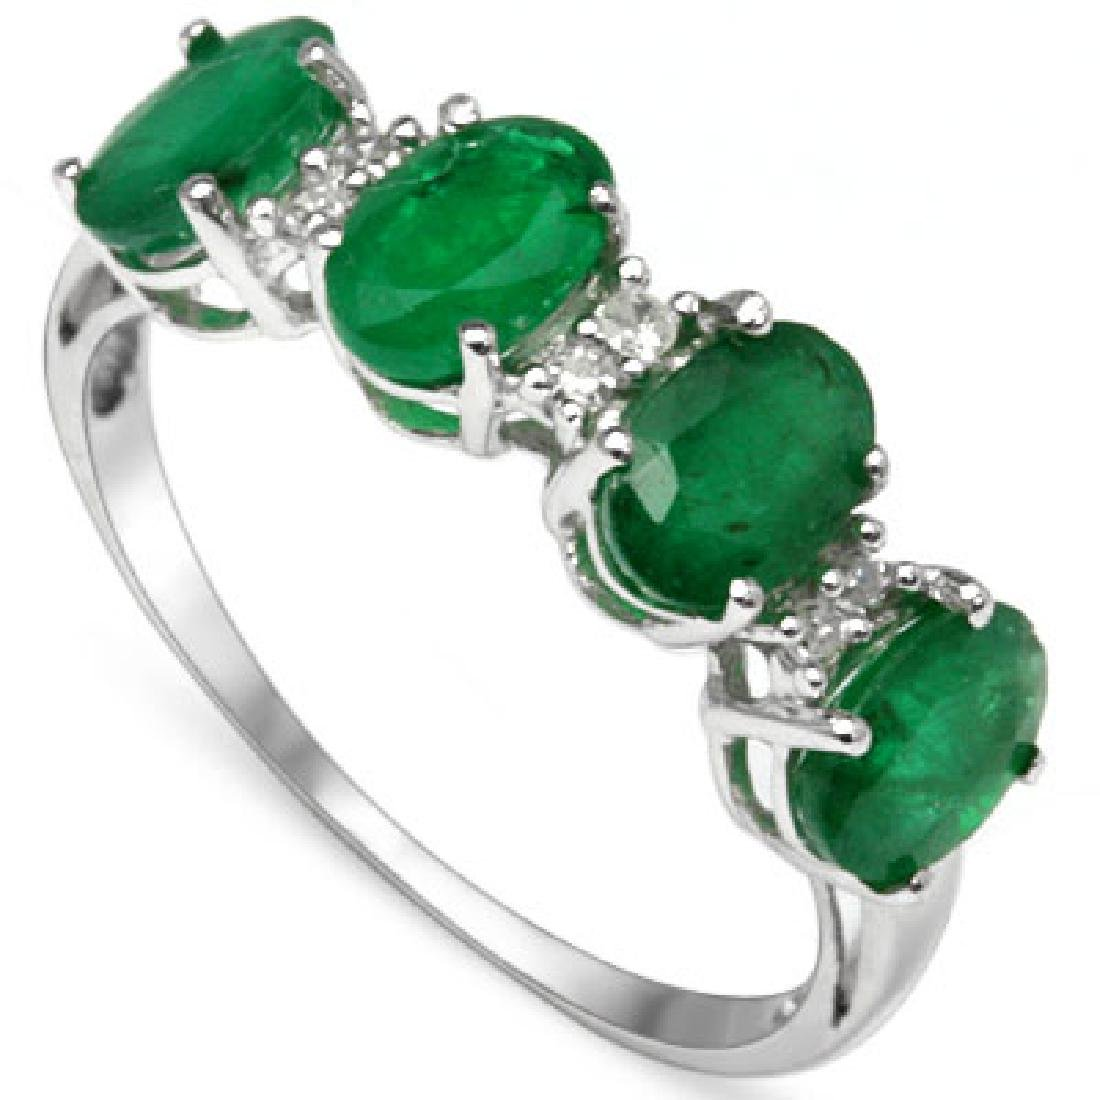 GORGEOUS 10K WHITE GOLD GENUINE 1CT EMERALD RING